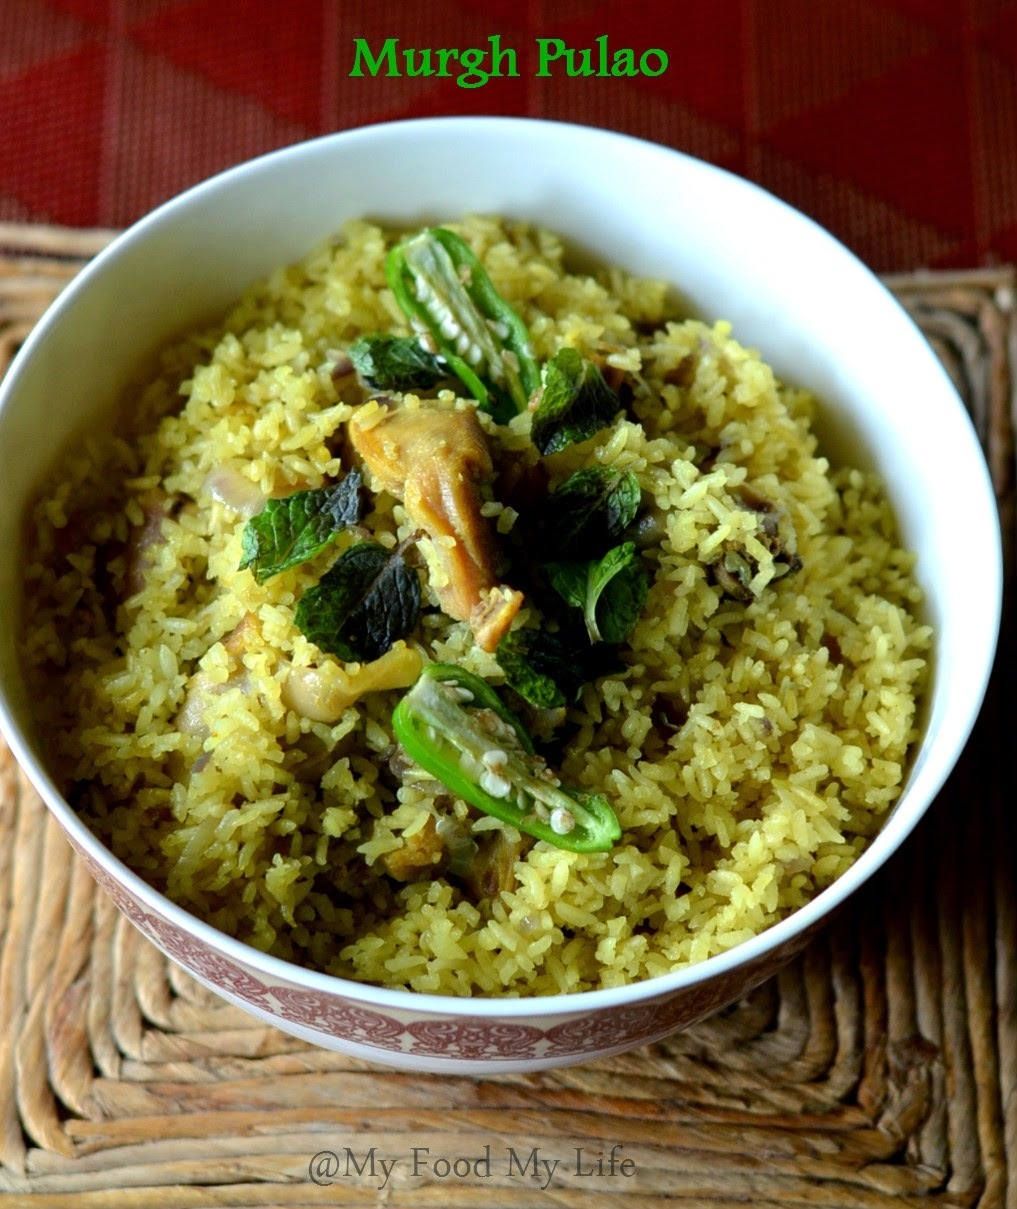 Murgh Pulao - One pot meal